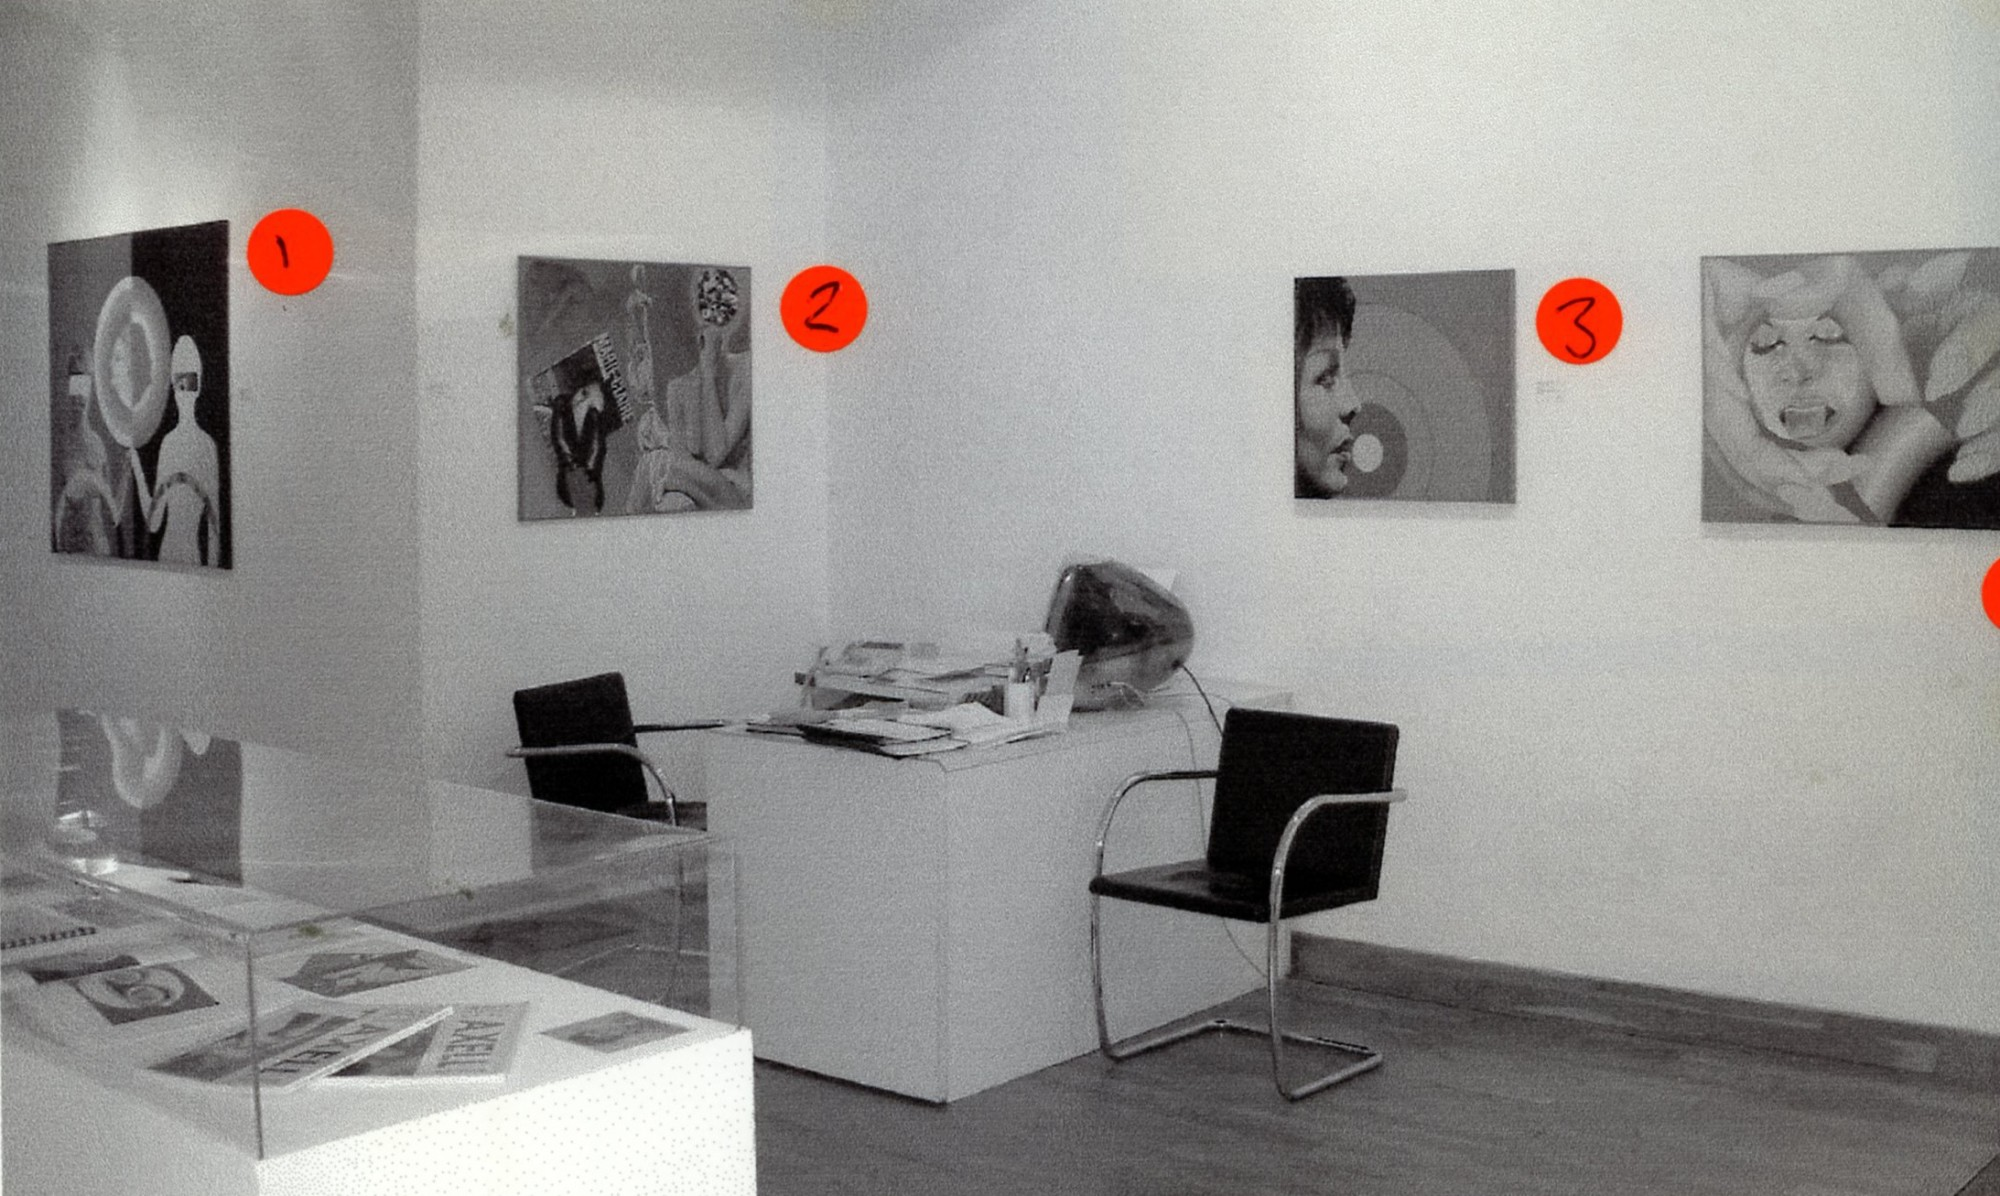 """<span class=""""link fancybox-details-link""""><a href=""""/exhibitions/131/works/image_standalone538/"""">View Detail Page</a></span><p>EVELYNE AXELL   EROTOMOBILES   05 JUN - 31 AUG 2003   Installation View</p>"""